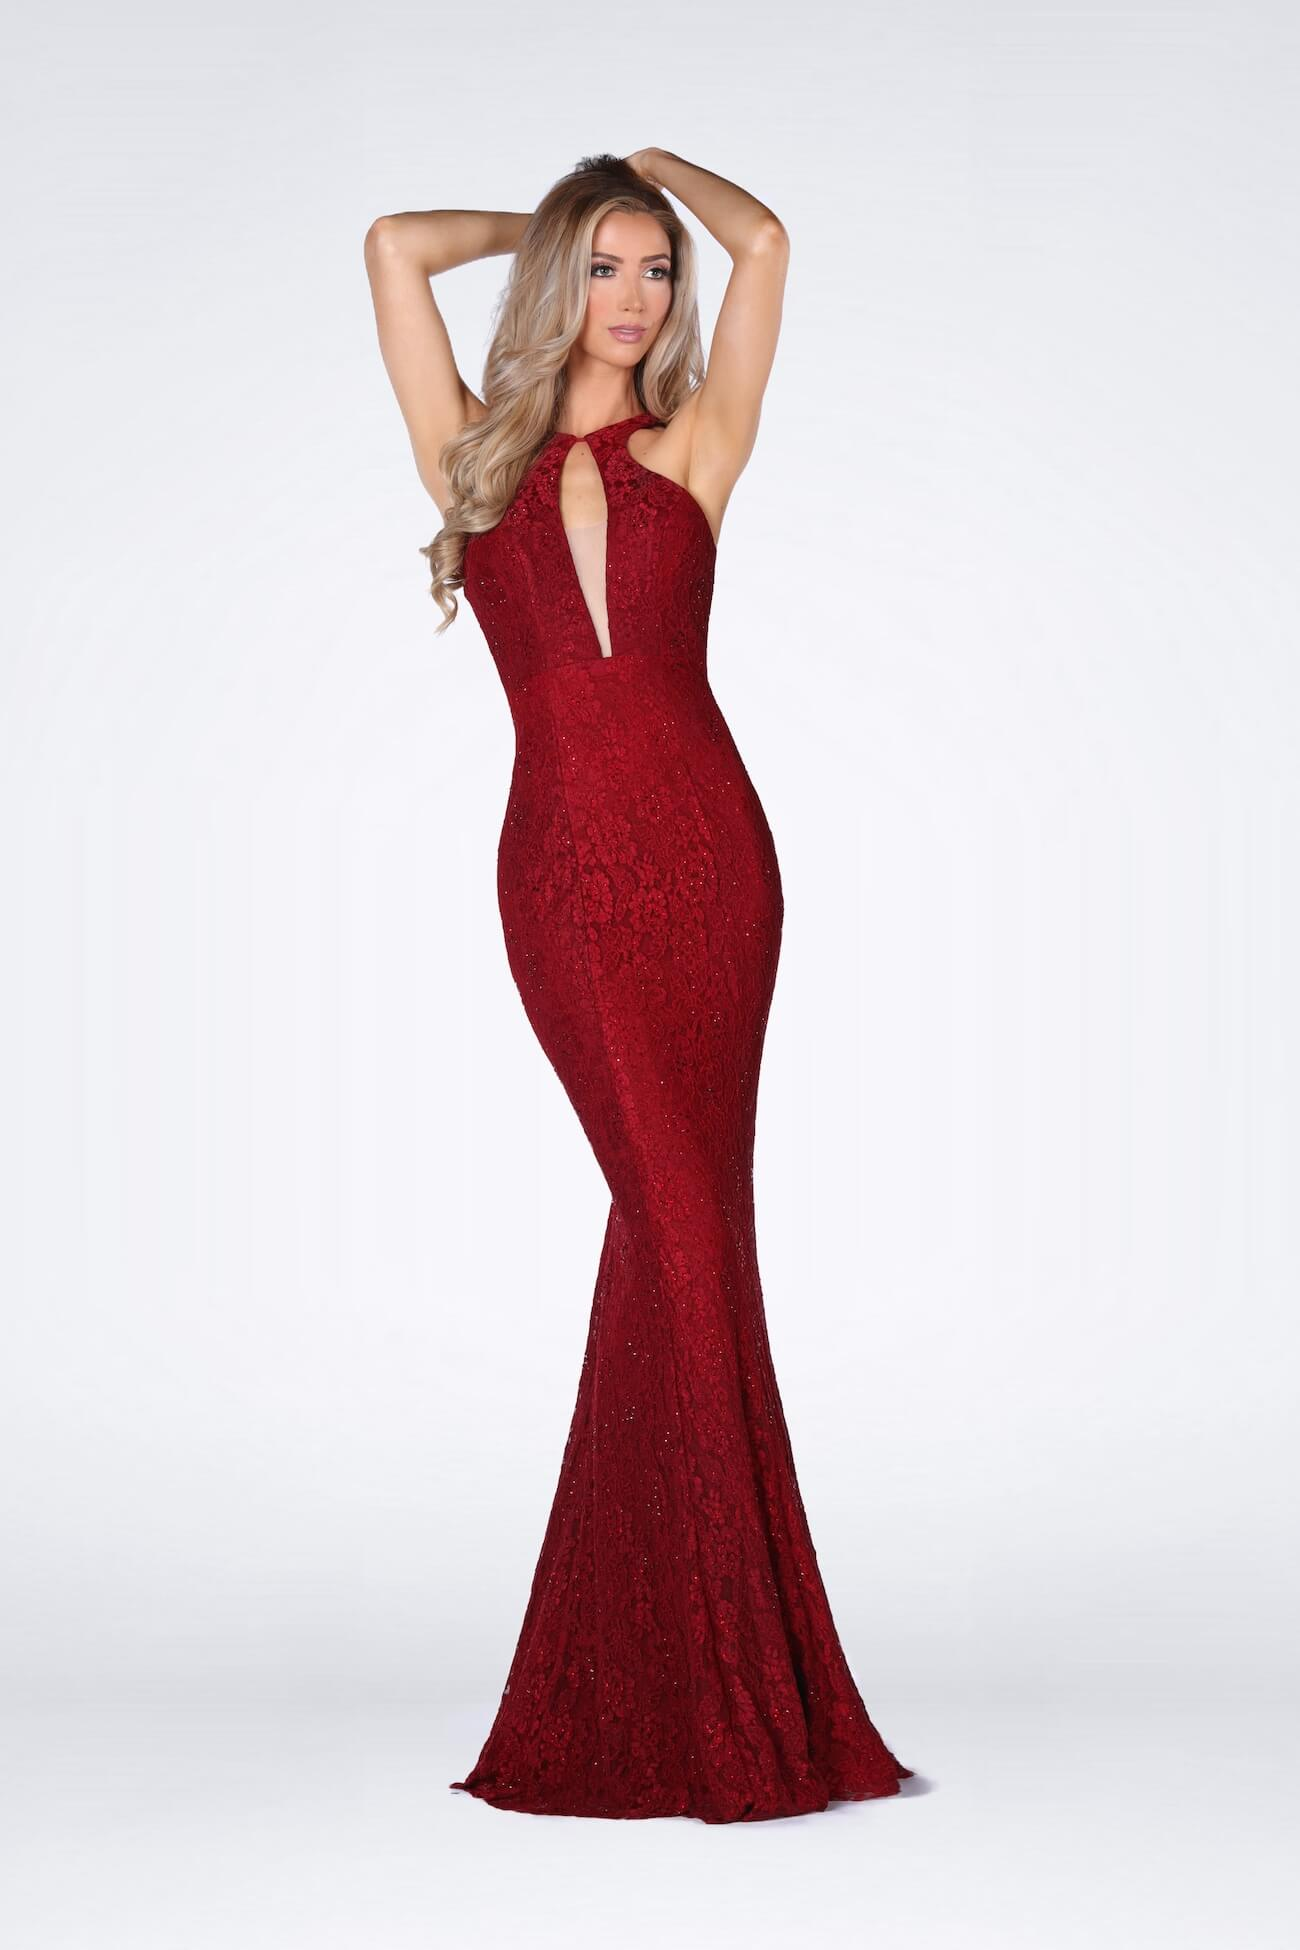 Vienna Red Size 0 Lace Mermaid Dress on Queenly